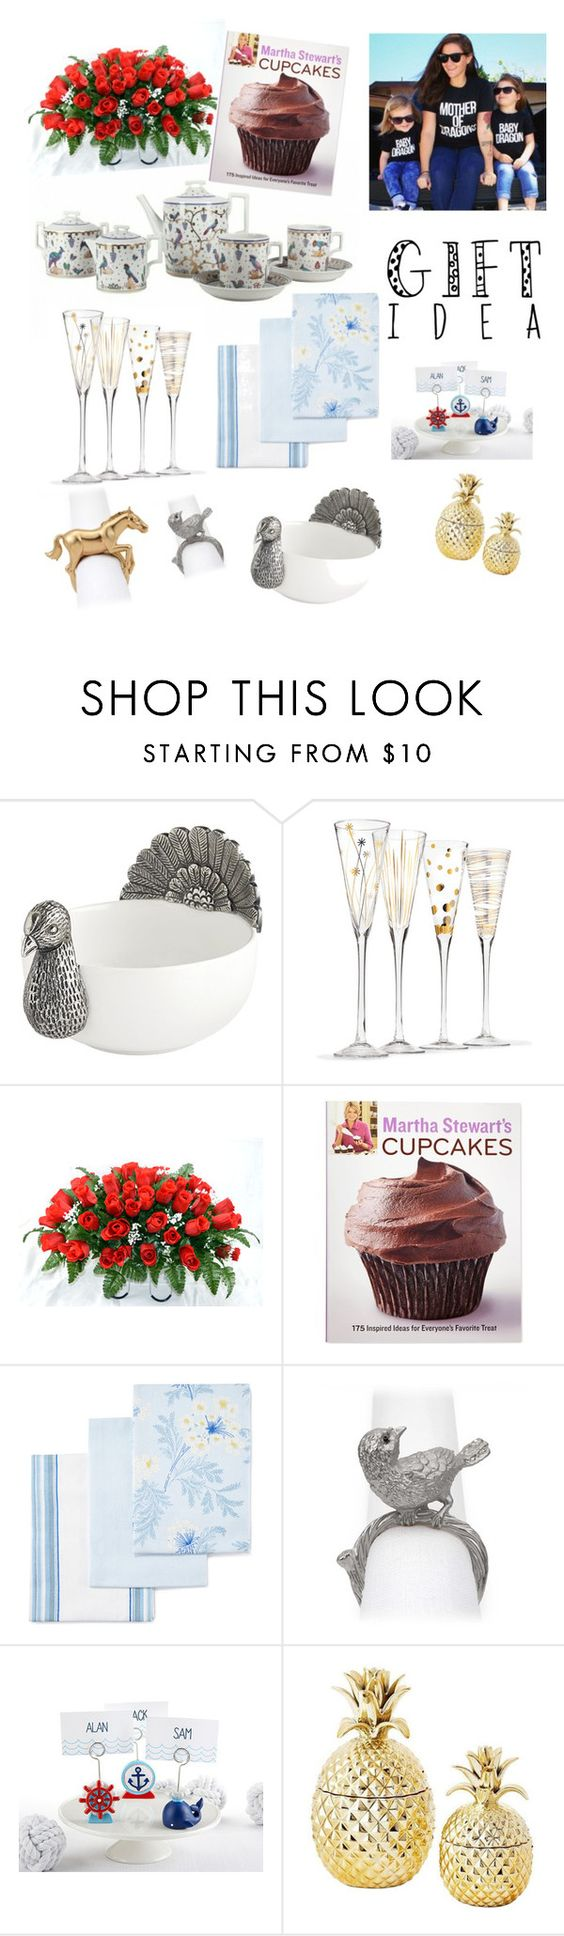 """Mother's day gift gide"" by greenshopstore ❤ liked on Polyvore featuring Pier 1 Imports, Martha Stewart, Laura Ashley, L'Objet, MothersDay, gift, gifts and mothersdaygiftguide"